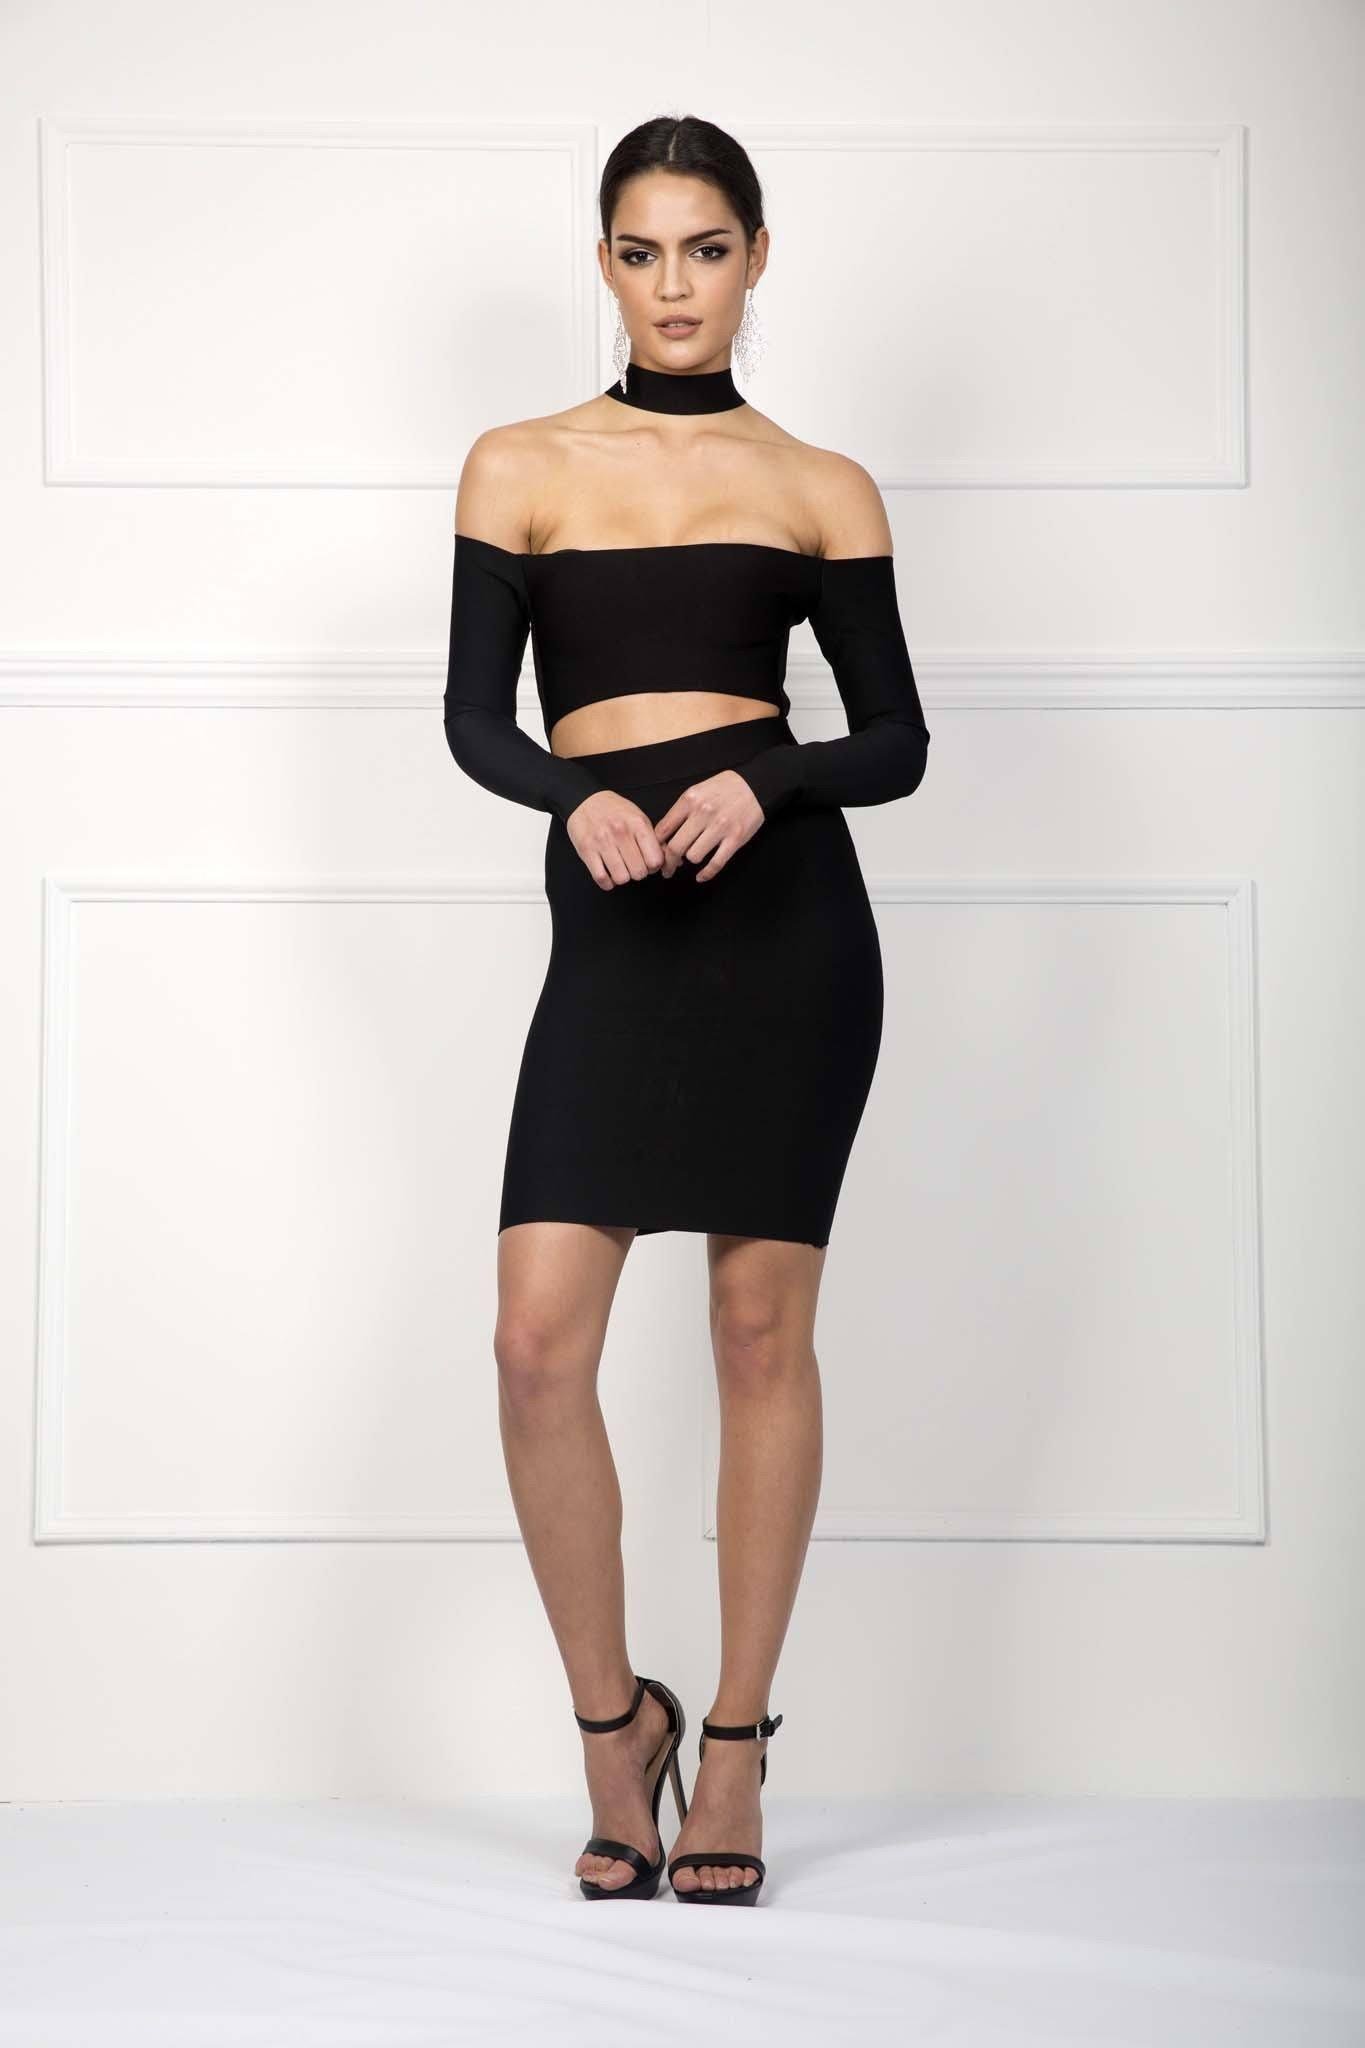 Black choker long sleeve bandage dress mini above knee length bodycon open shoulders cutout designs